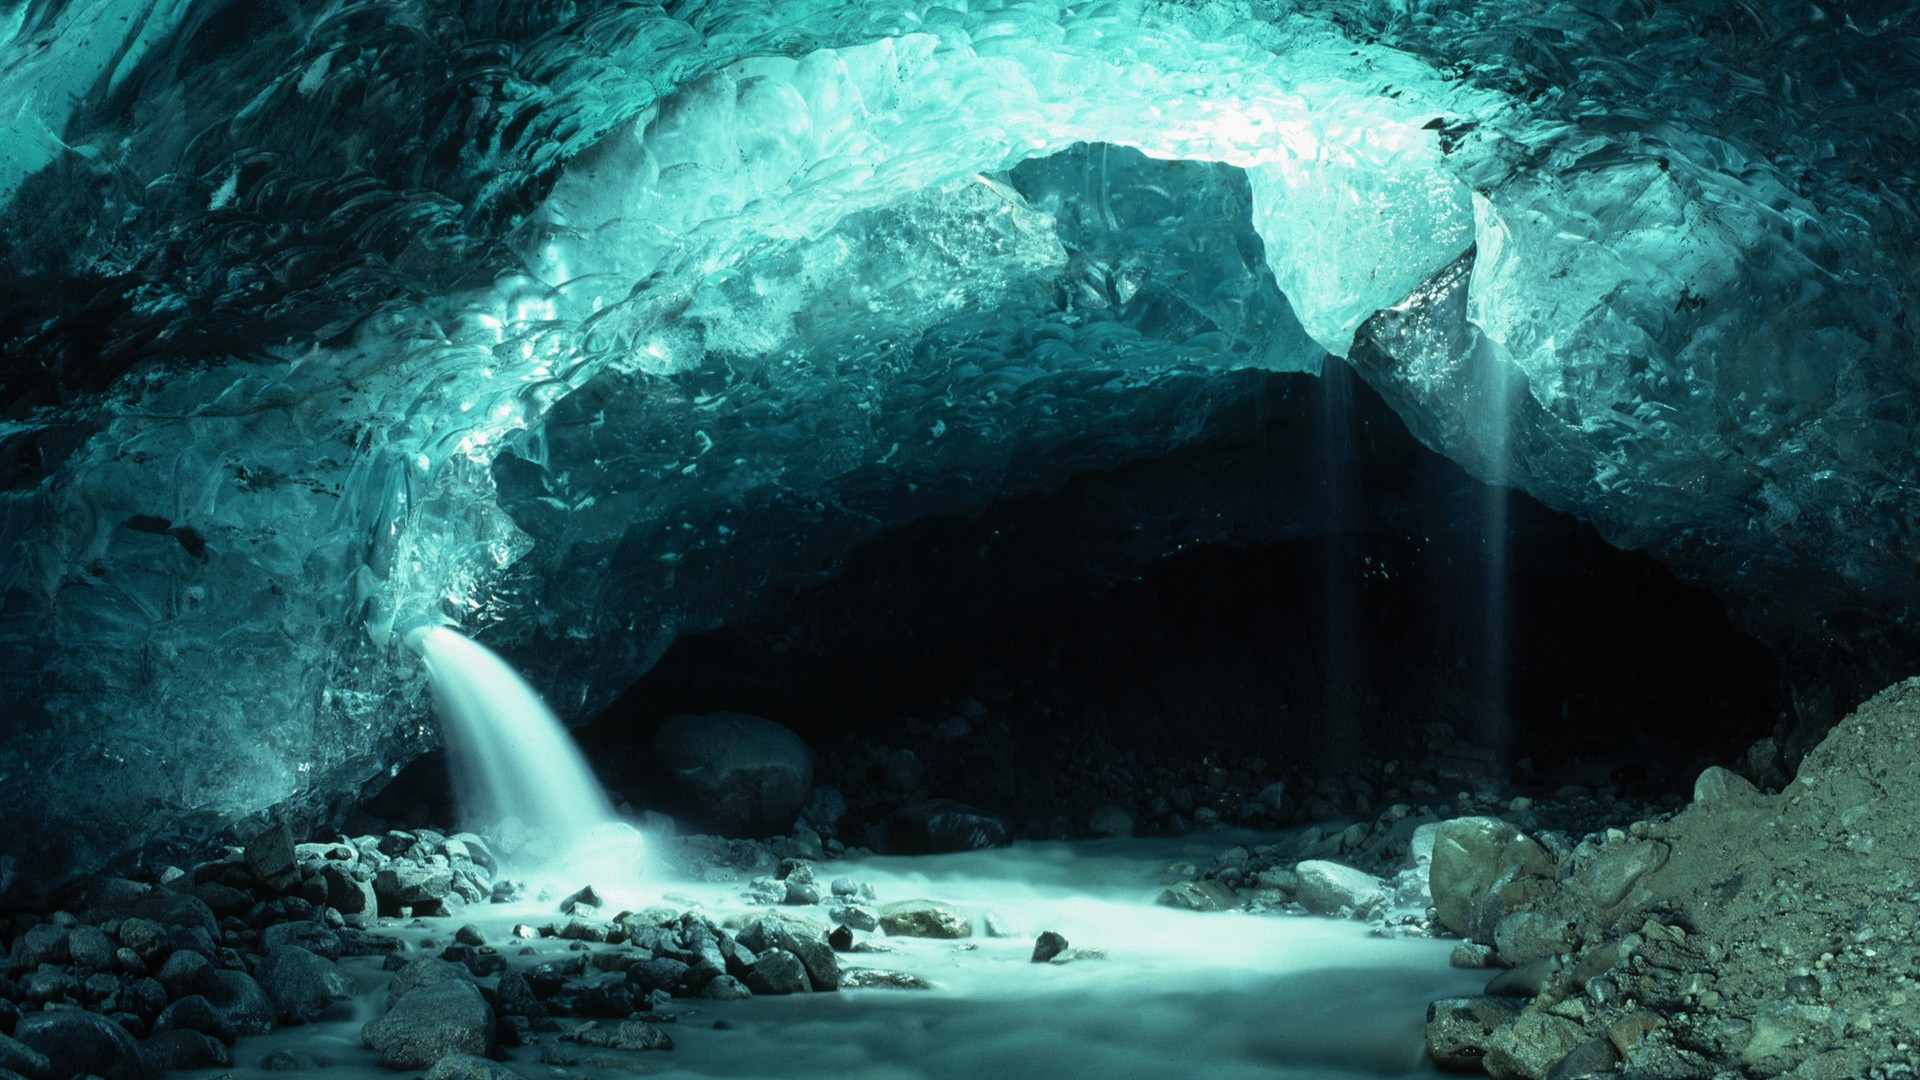 Images for Gt Ice Cave Wallpaper Iphone